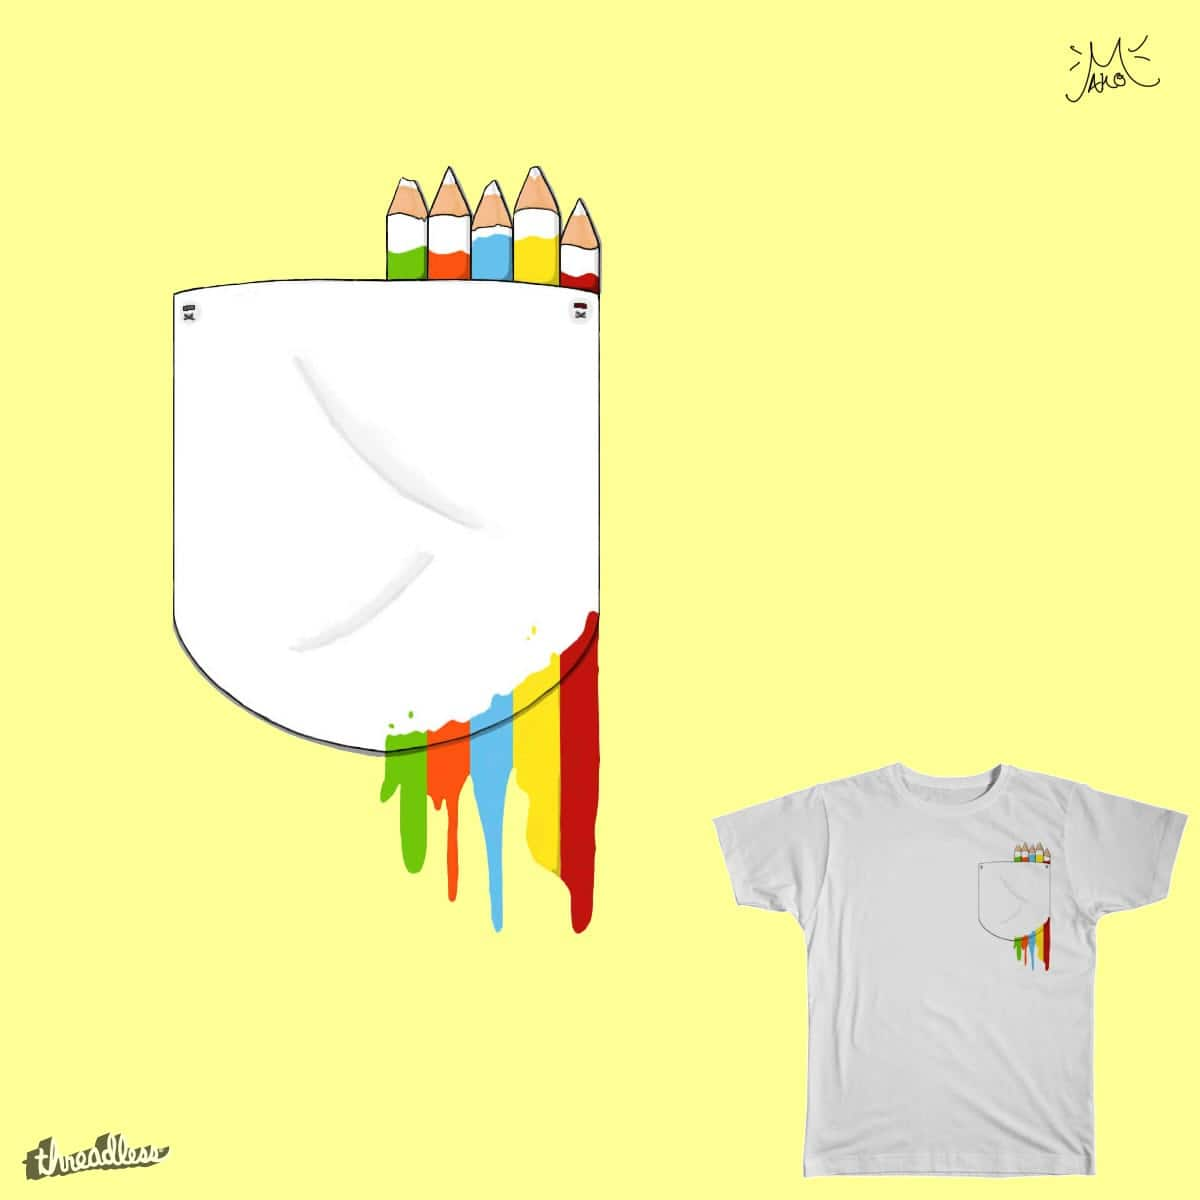 Wasted Colors by ssjaundre on Threadless